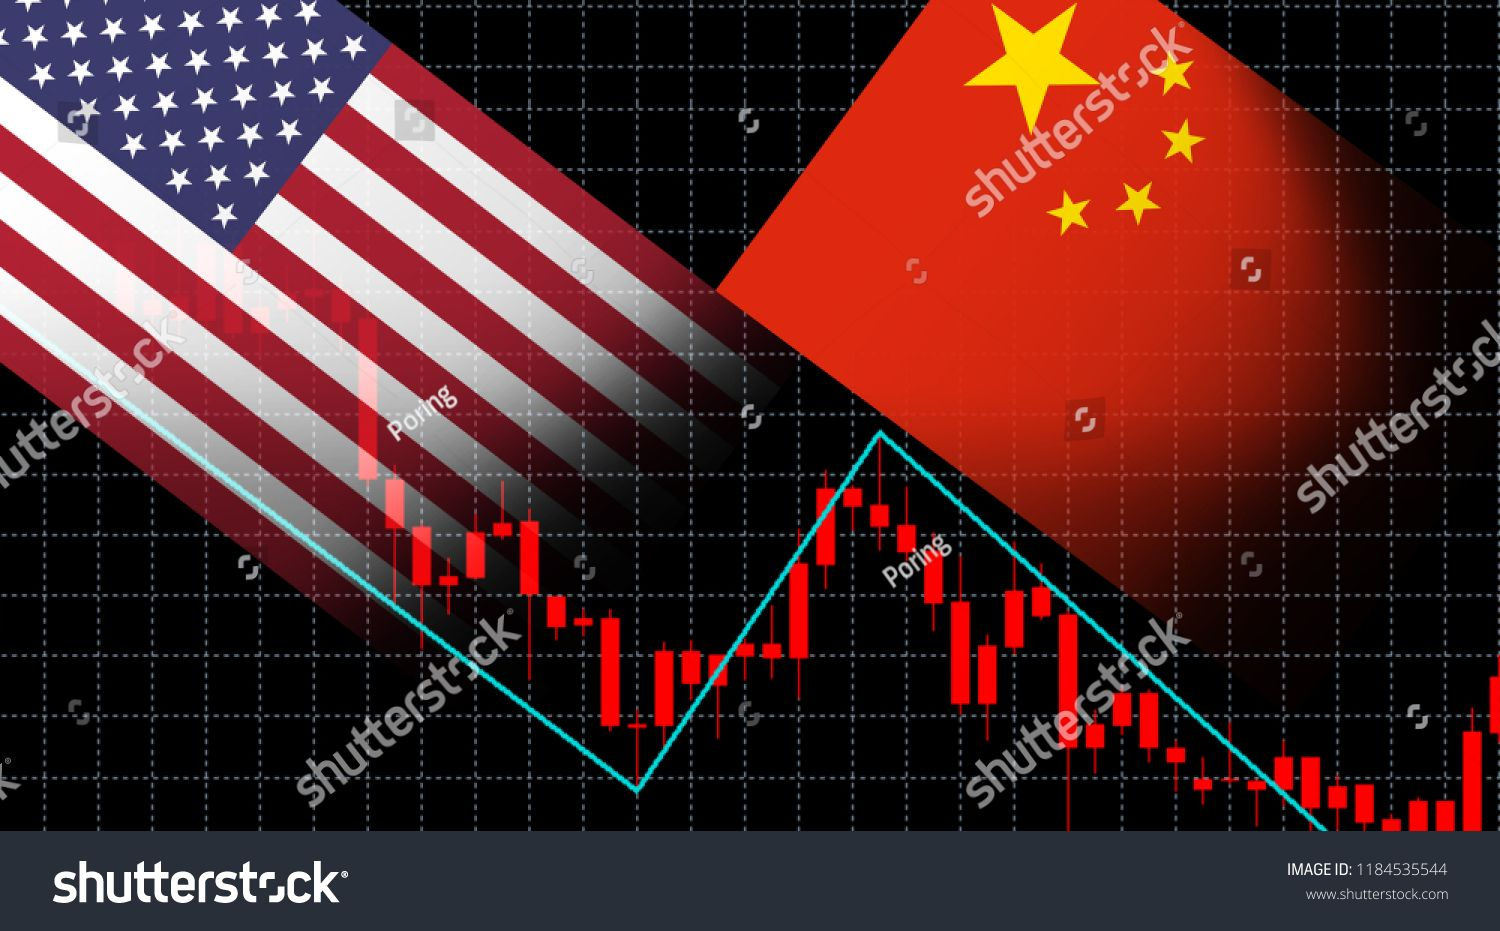 Financial Crisis Stock Market Graph Chart Of Investment Screen Trading On The Currency Market Forex Us Chart Investment Stock Market Chart Stock Market Graph